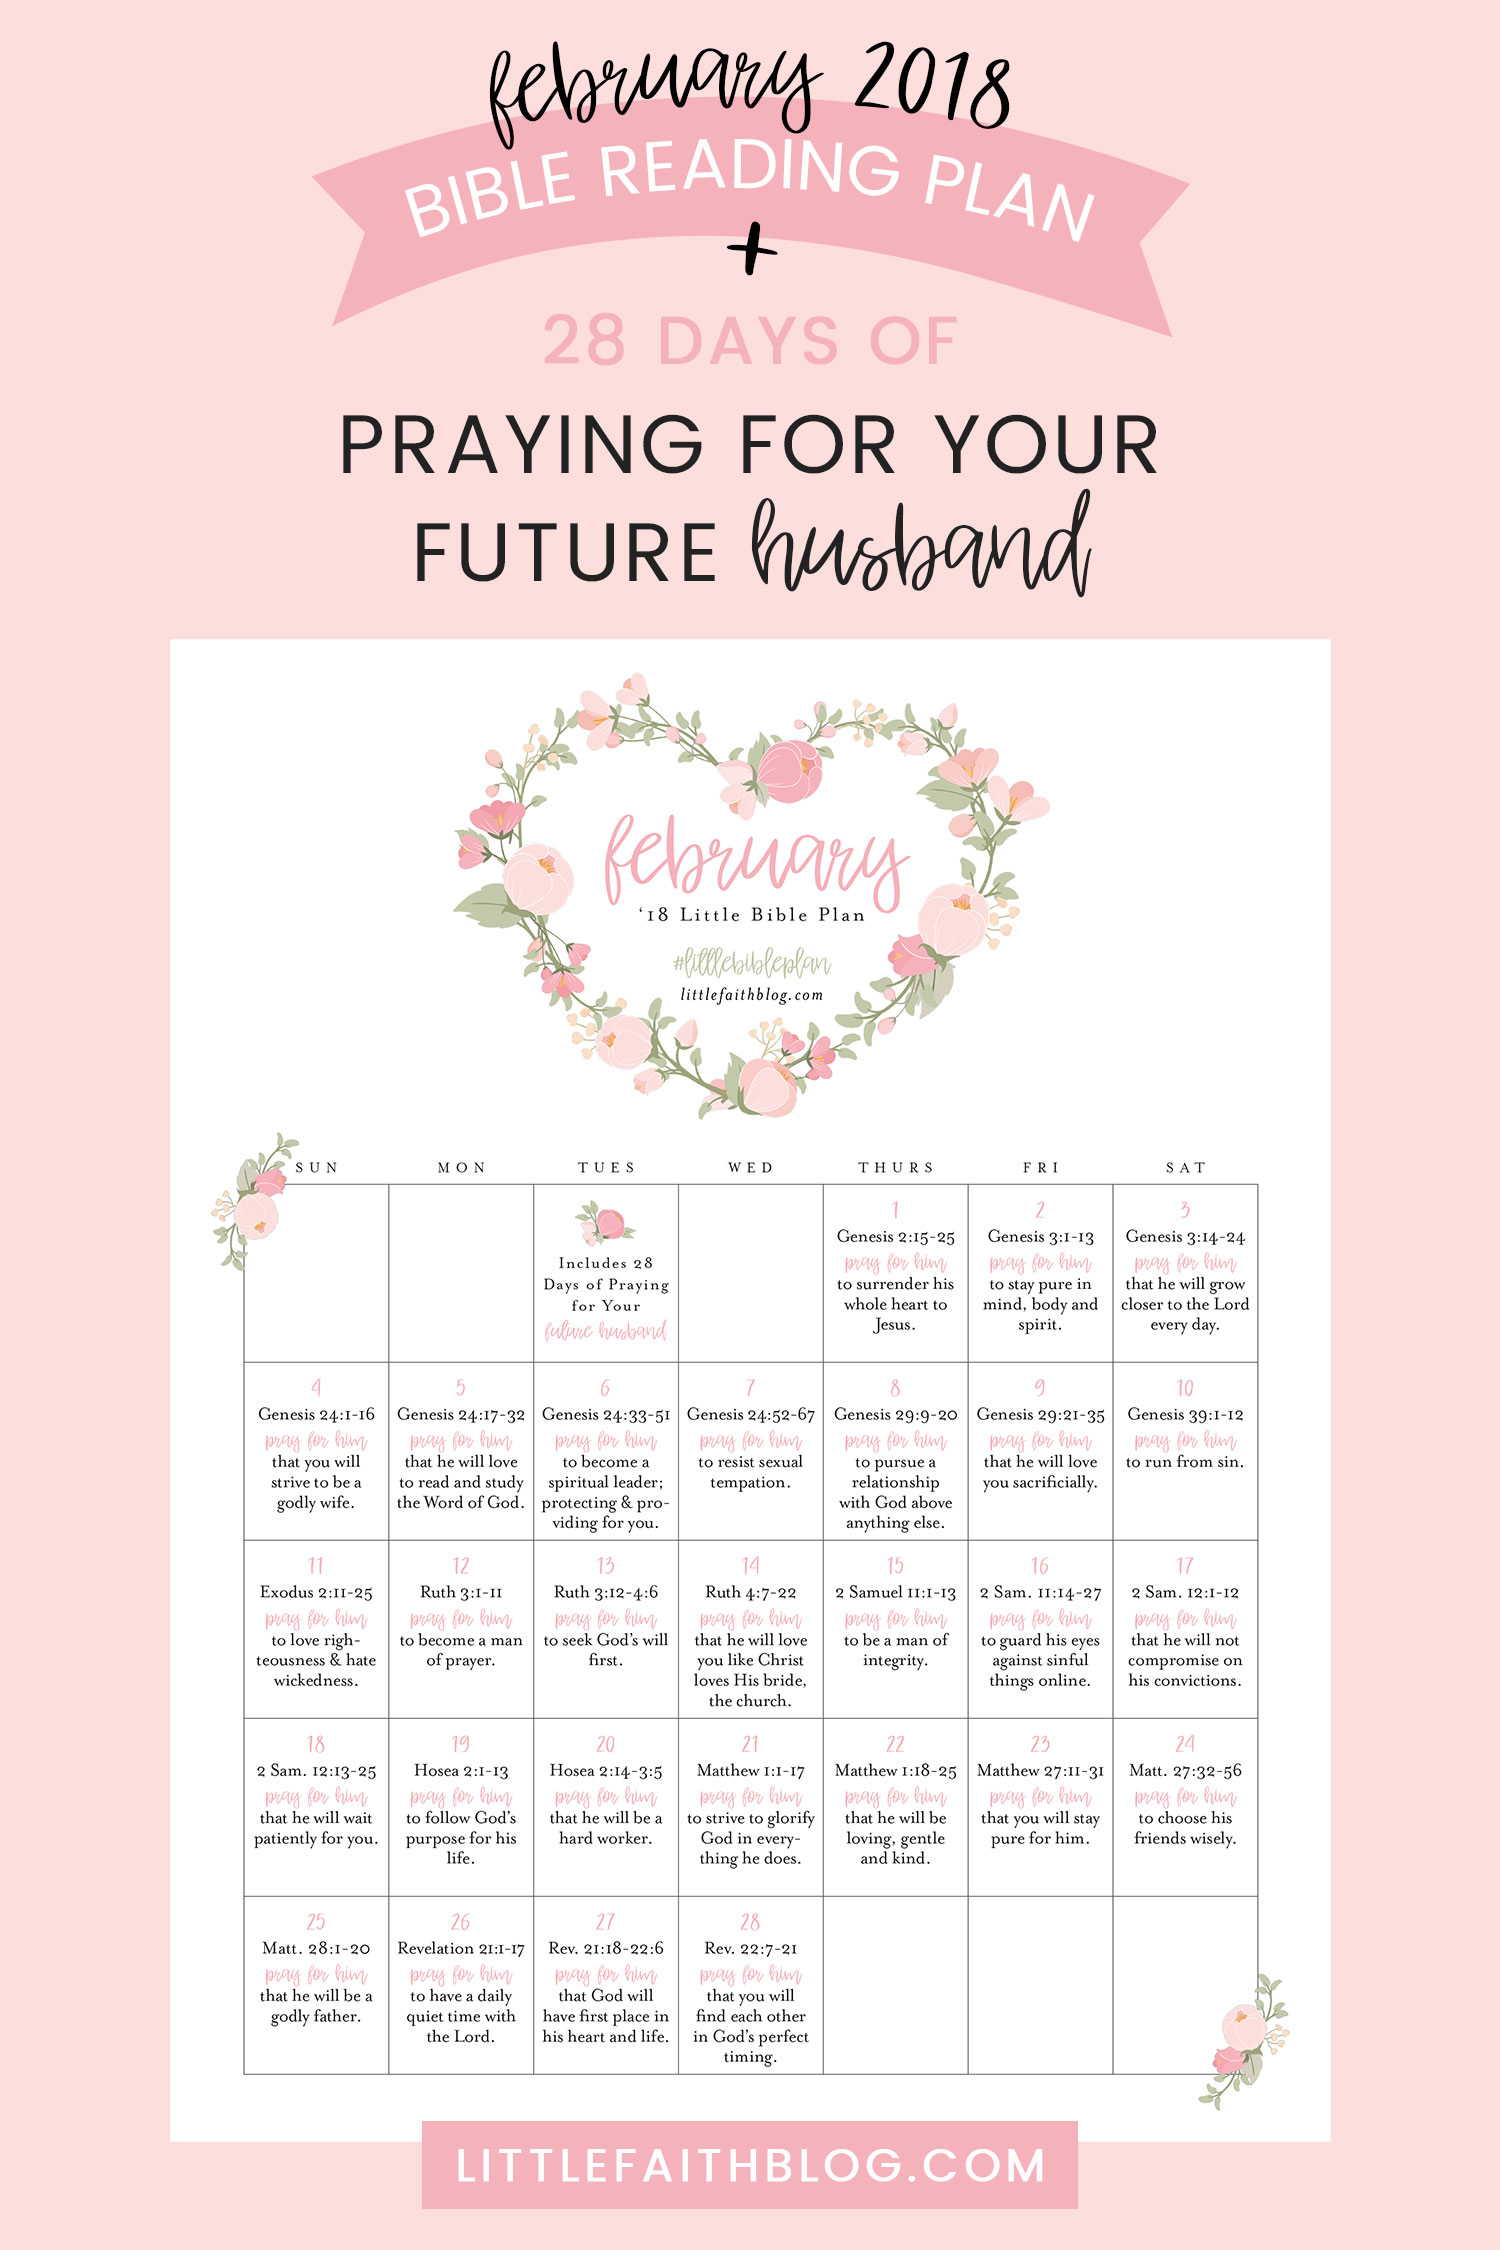 February 2018 Bible Reading Plan + 28 Days of Praying for